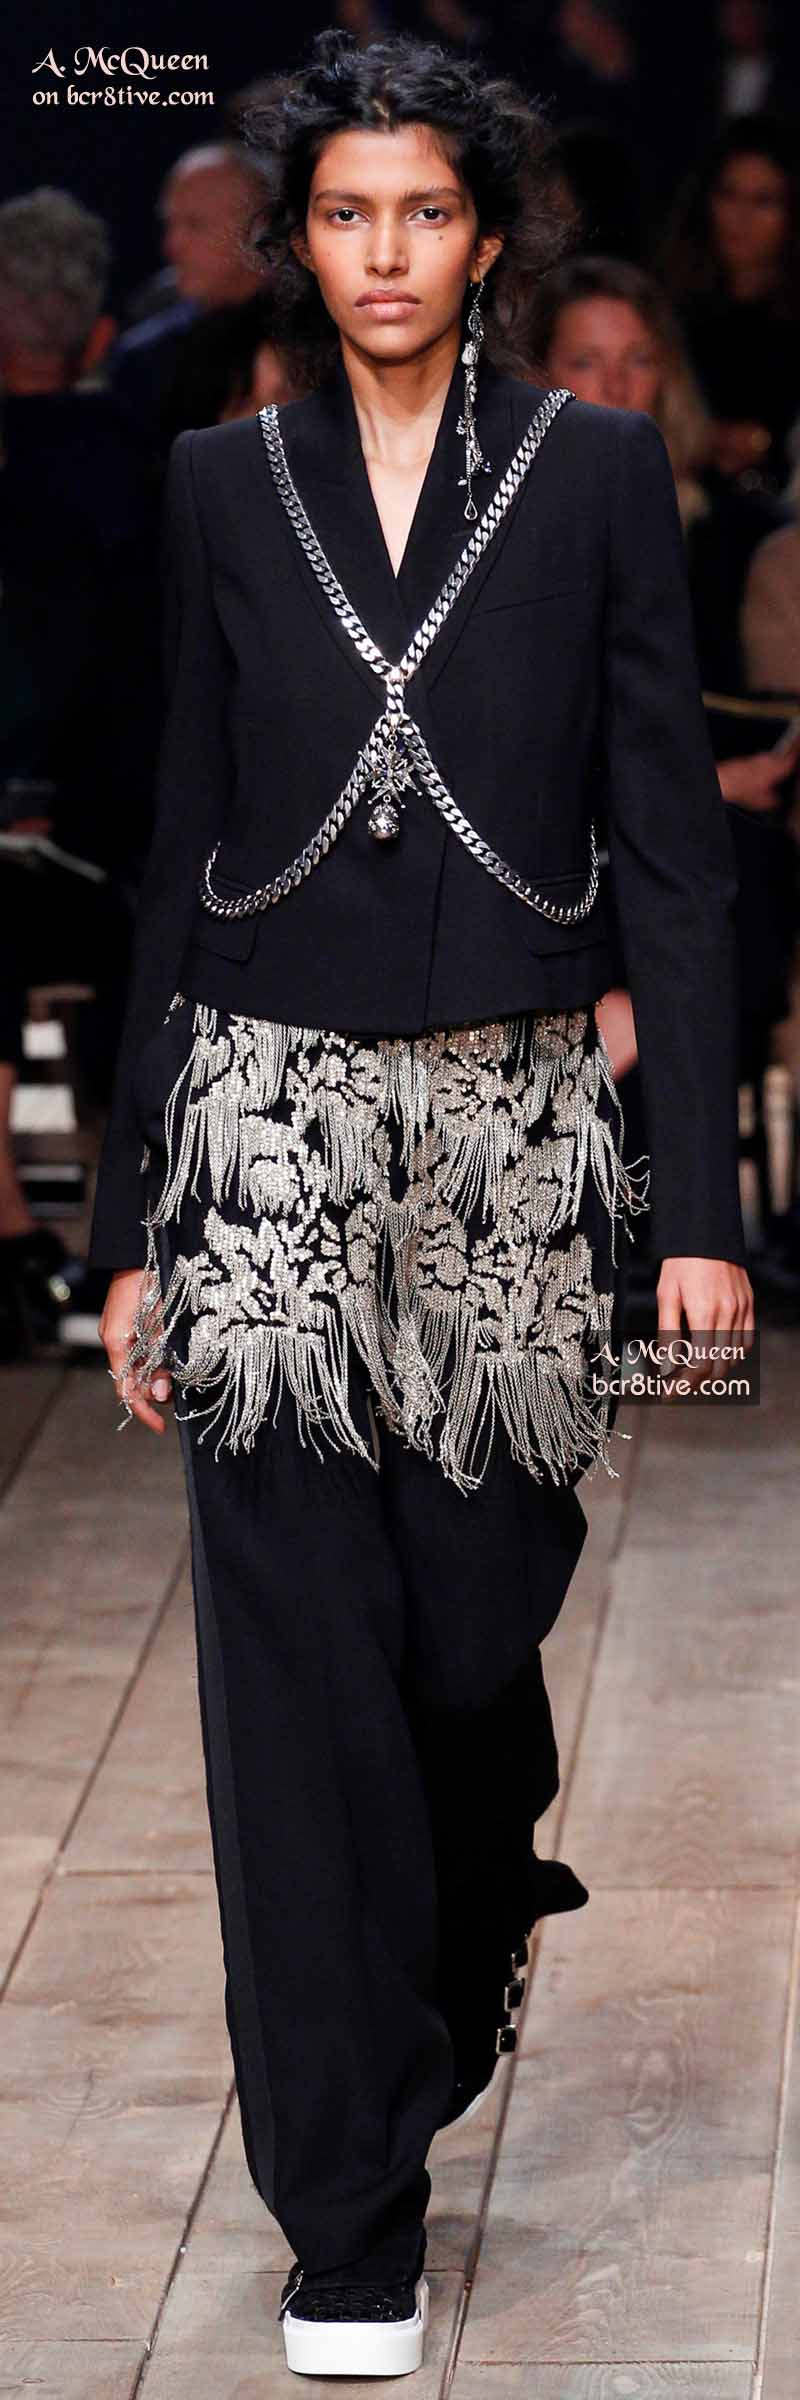 Alexander McQueen Suit with Metallic-Chain Embellished Tunic and Body Chain